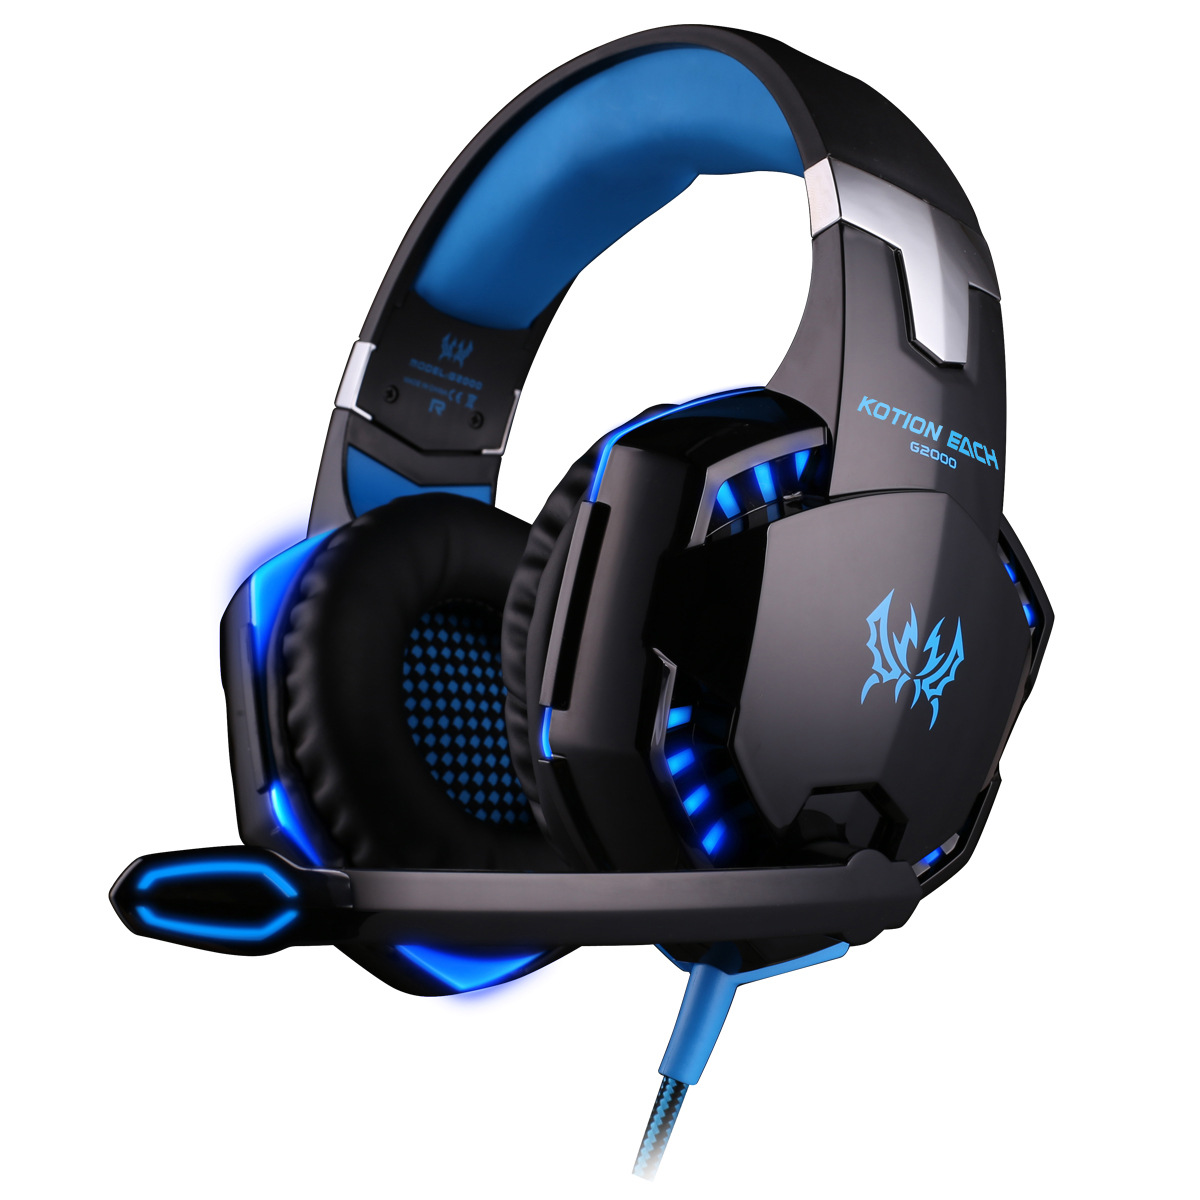 NIYOQUE EACH G2000 Over-ear Game Headset Earphone Headband Gaming Headphone with Mic Stereo Bass LED Light for PC Game Dota game over